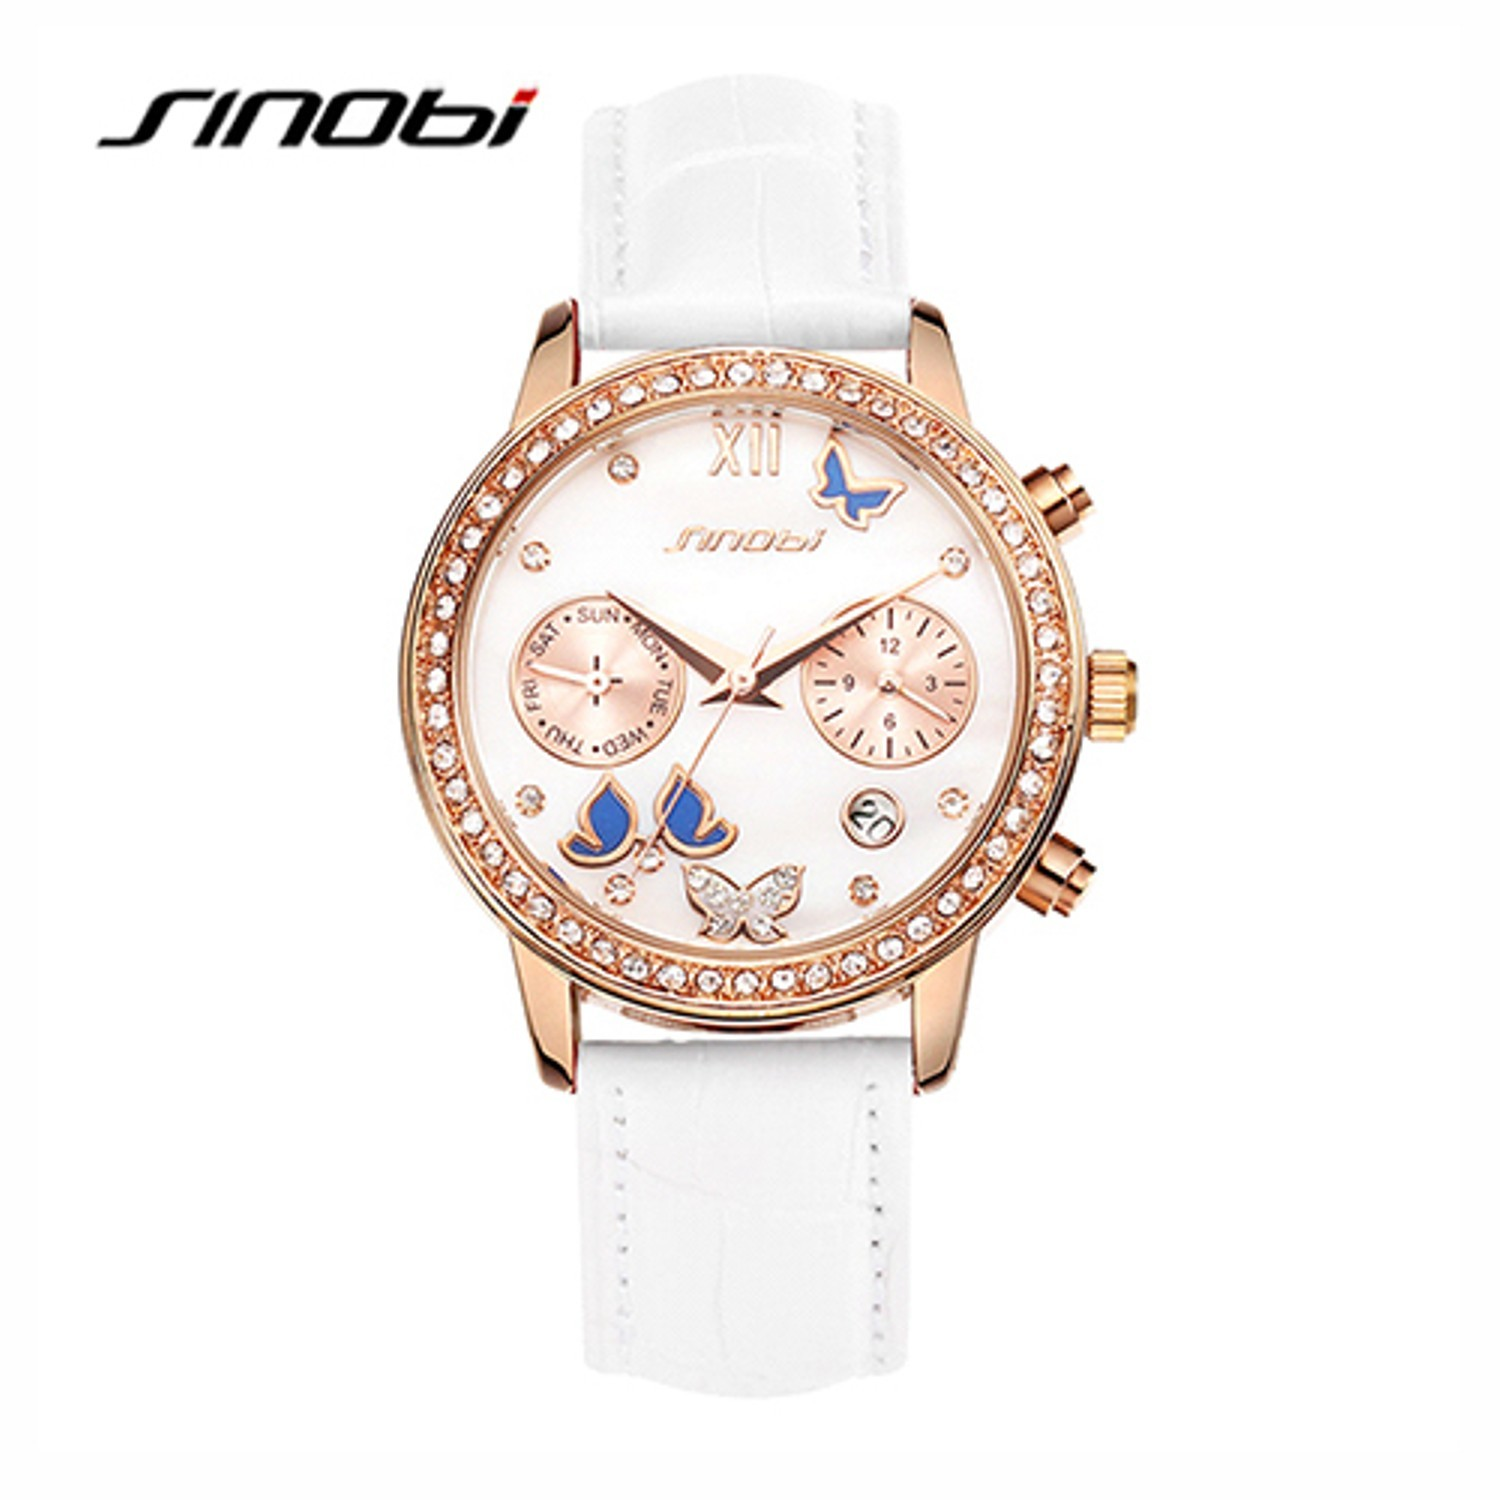 SINOBI-New-Arrival-Fashion-Butterfly-Women-Watches-Leather-Strap-Rose-Gold-Ladies-Quartz-Watches-Diamond-Luxury_1500x1500_STRETCH_11V6556L01.jpg